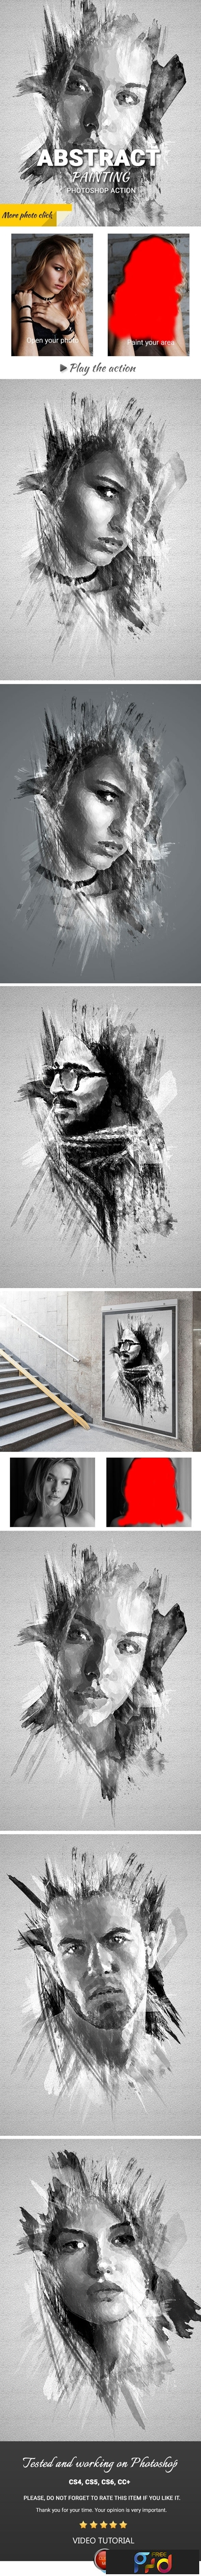 Abstract Painting Photoshop Action 23725401 1